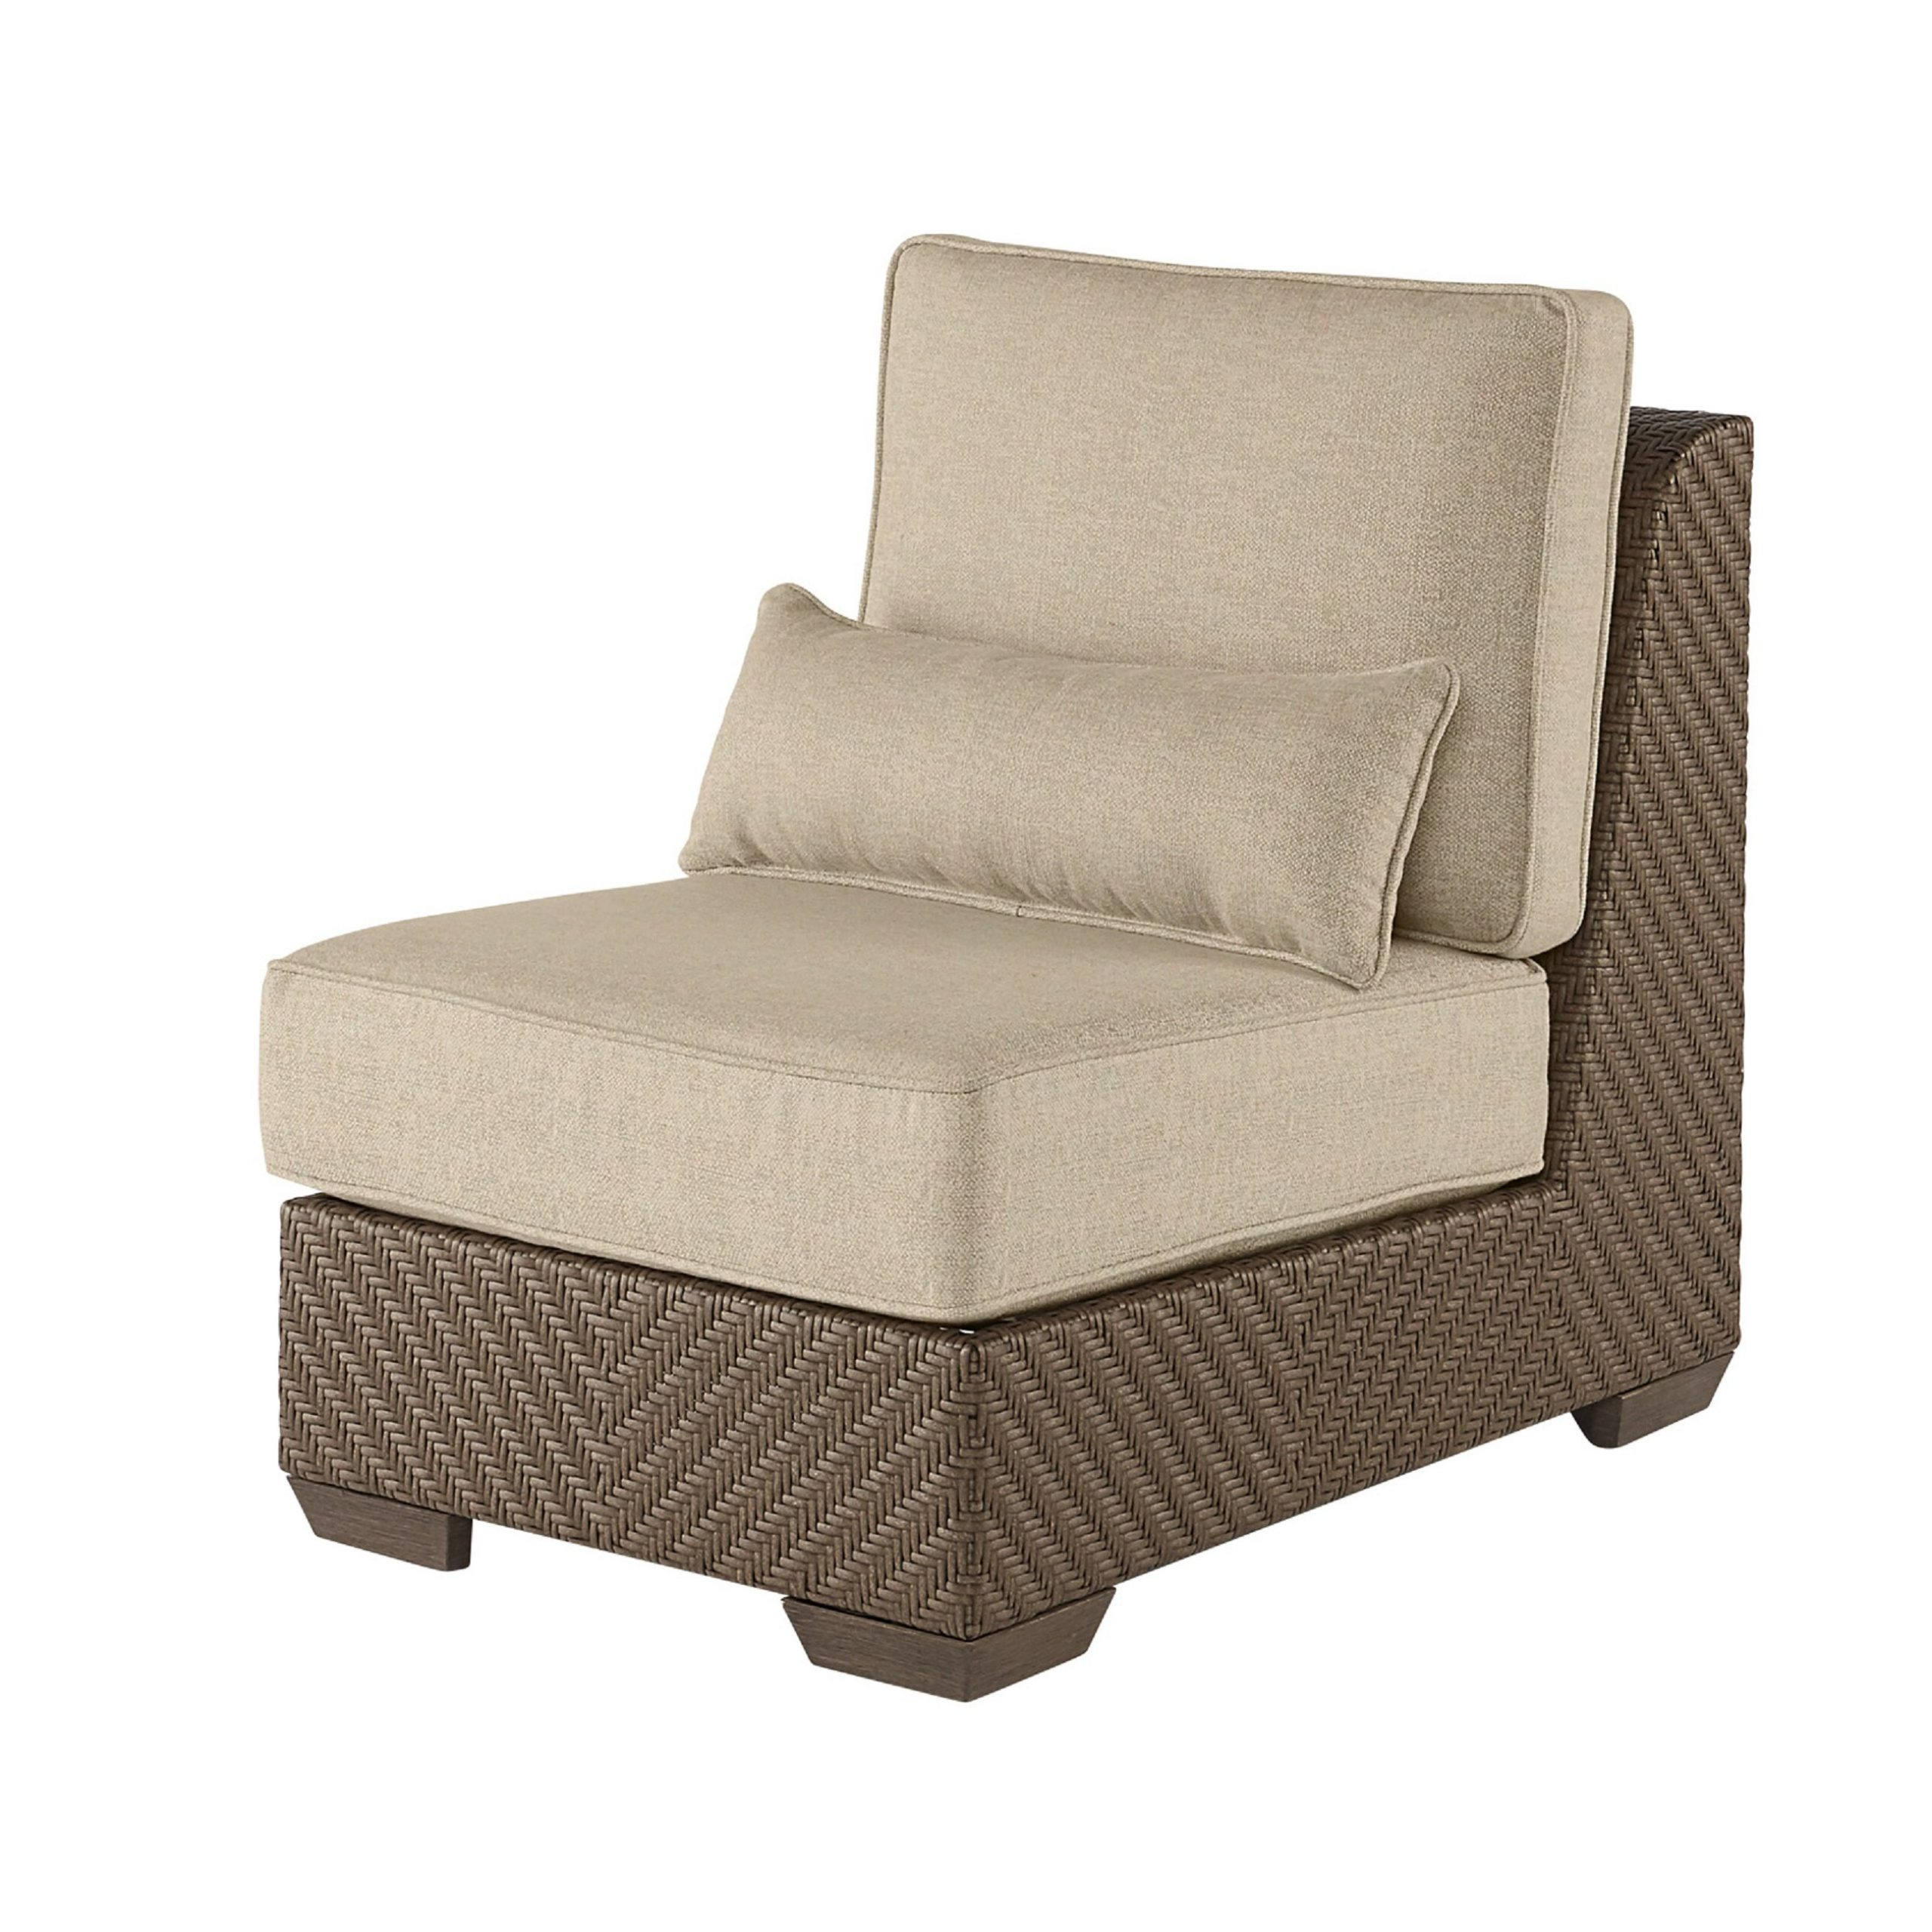 Descargar Pdf Astrid Wicker Patio Chair With Cushion Regarding Most Recent Astrid Wicker Patio Sofas With Cushions (View 9 of 25)